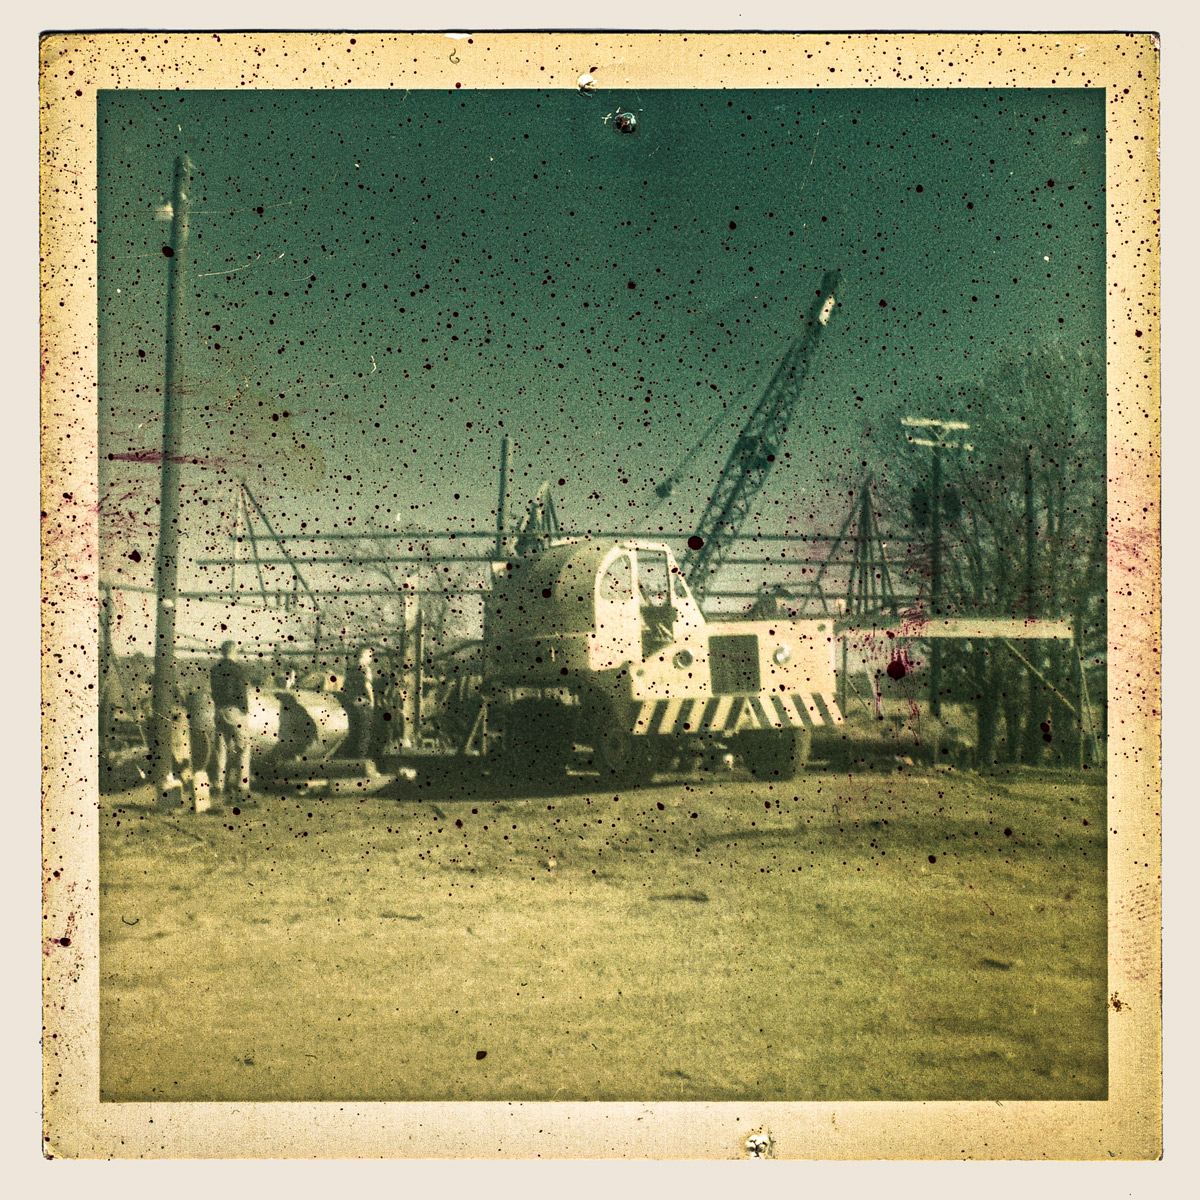 The historic Phillips sawmill being build in 1958.